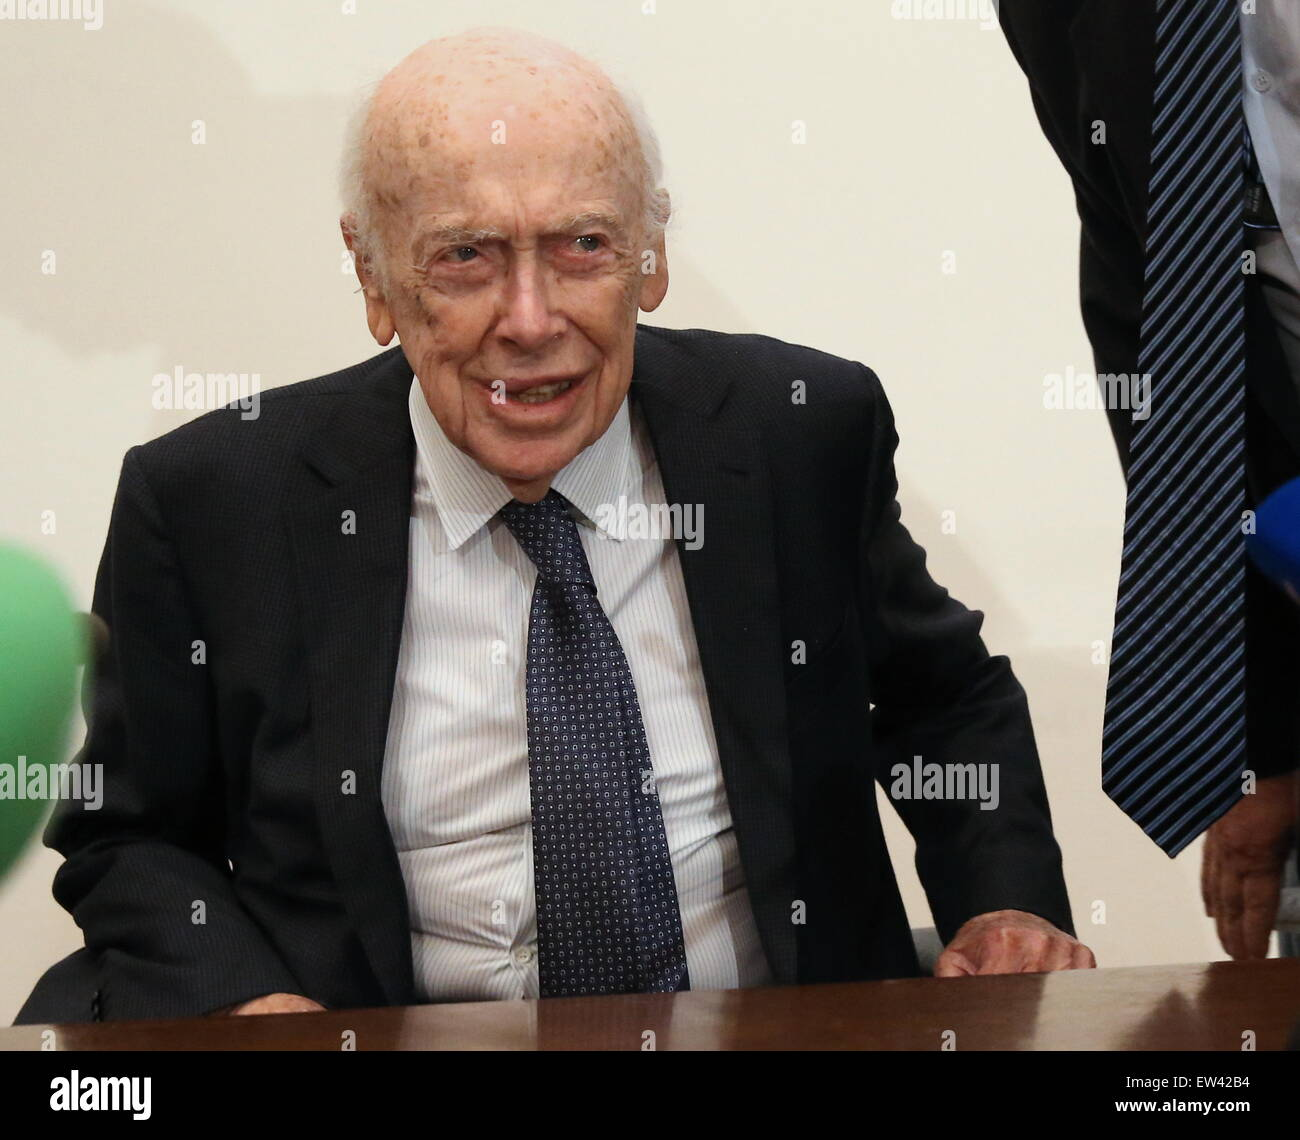 Moscow, Russia. 17th June, 2015. American molecular biologist, geneticist and zoologist James Watson, laureate of - Stock Image